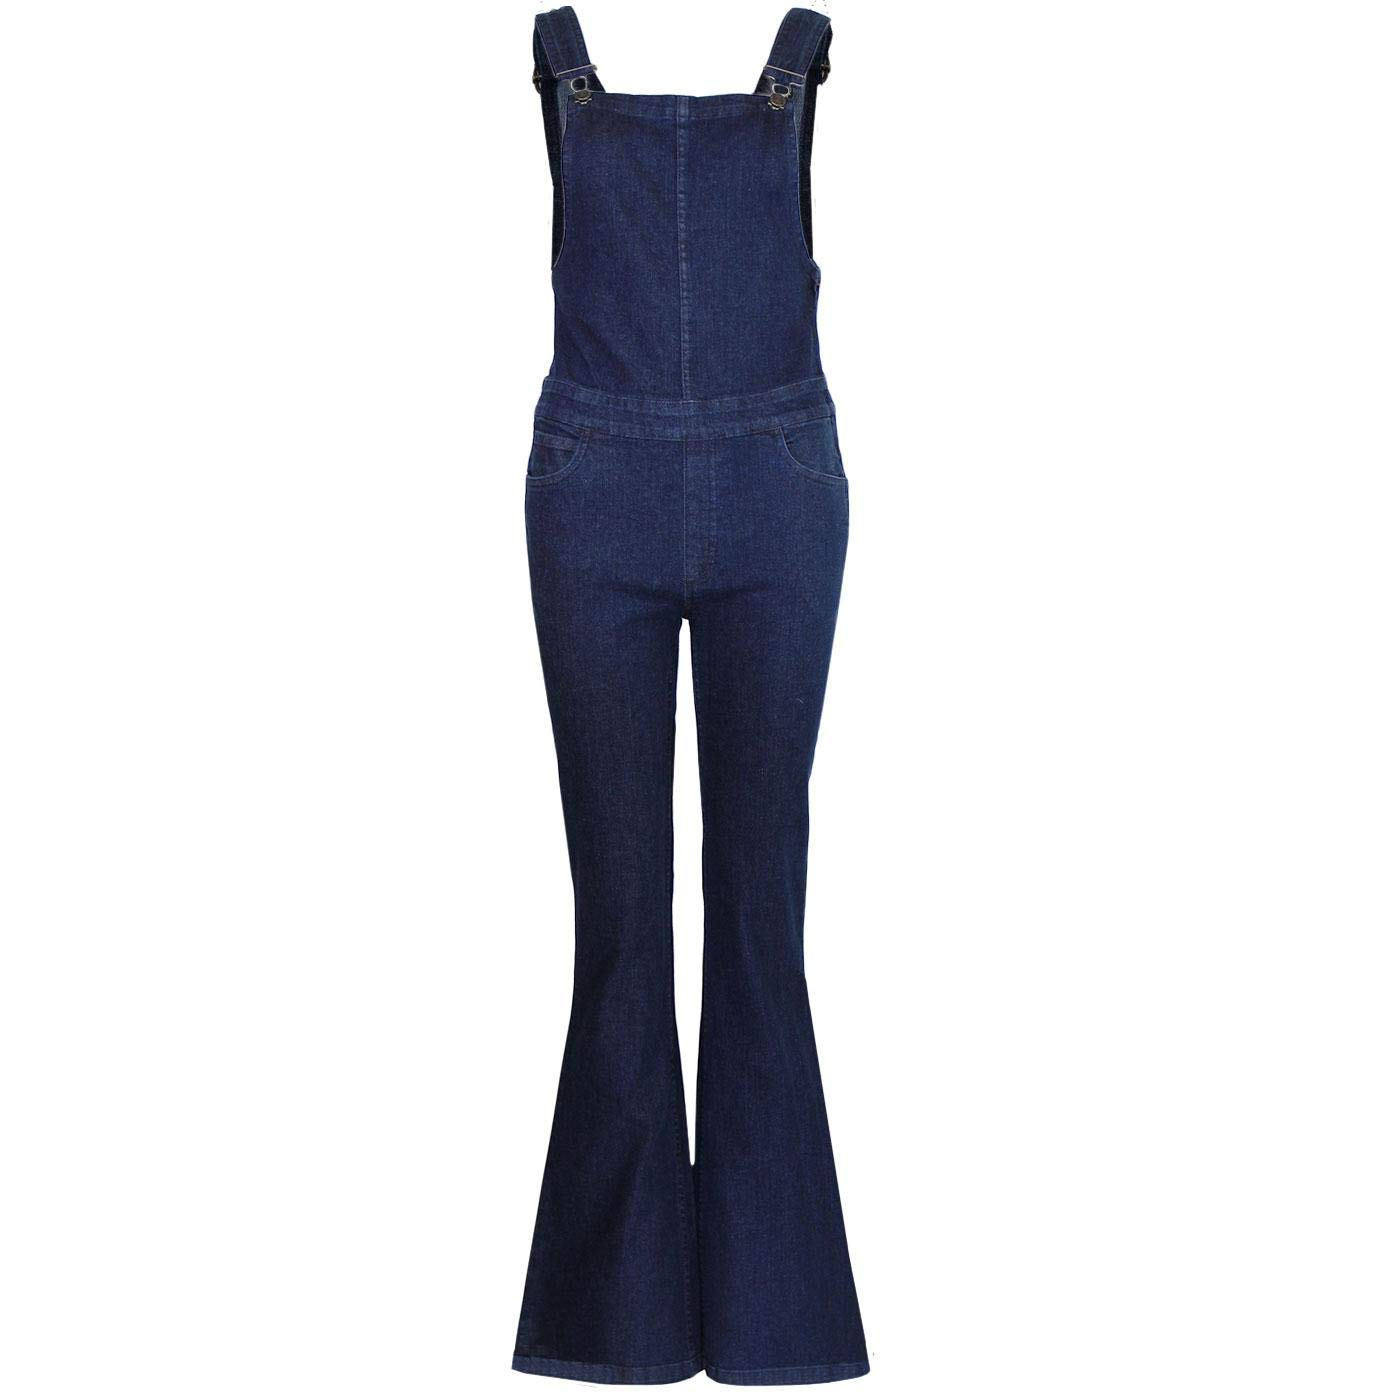 70s Jumpsuit | Disco Jumpsuits, Sequin Rompers Madcap England Womens Bellbottom Blues Flared Denim Dungaree Flares £39.99 AT vintagedancer.com